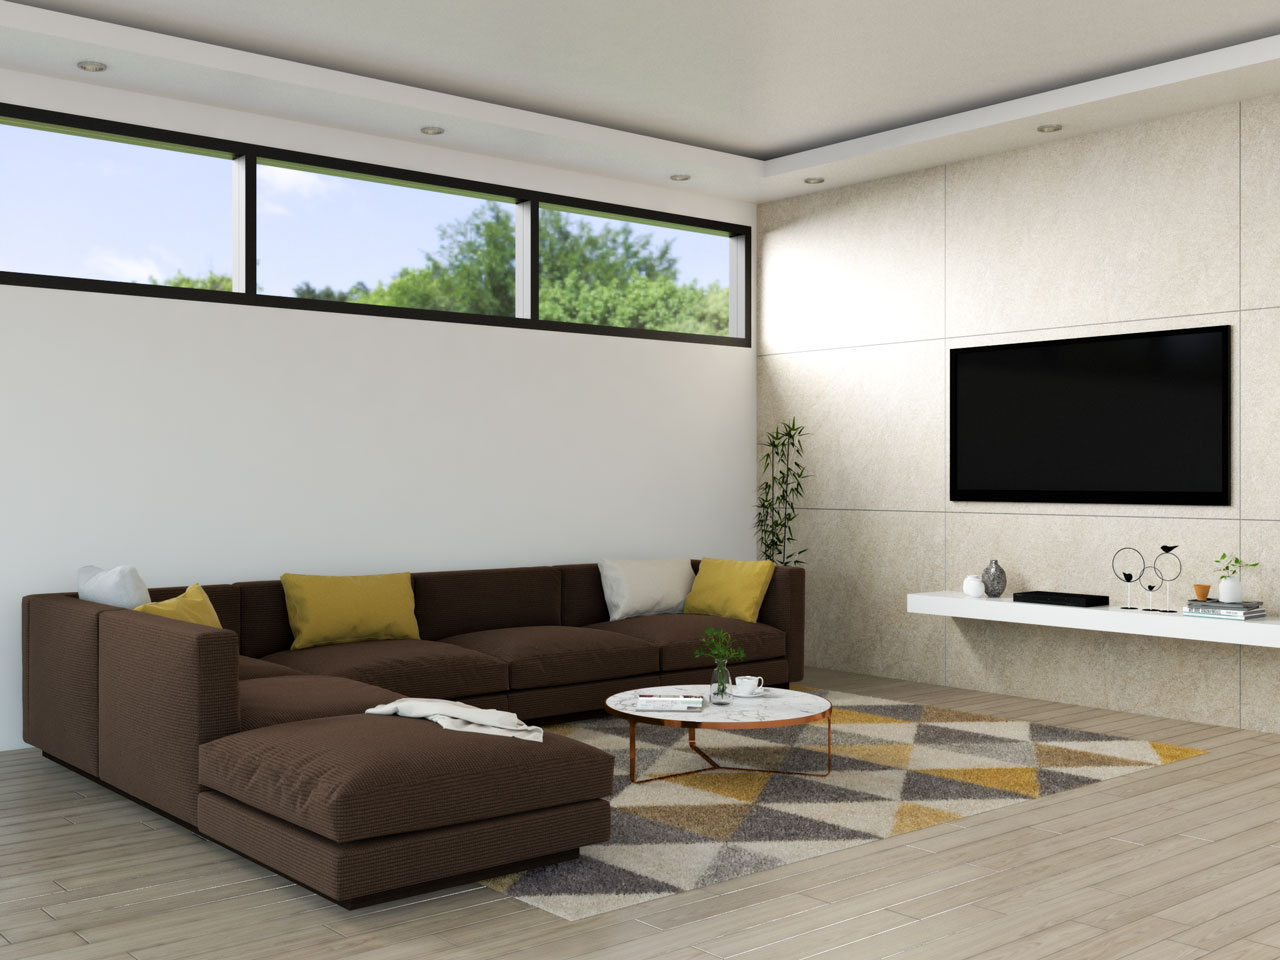 Living room with brown sofa and yellow accents